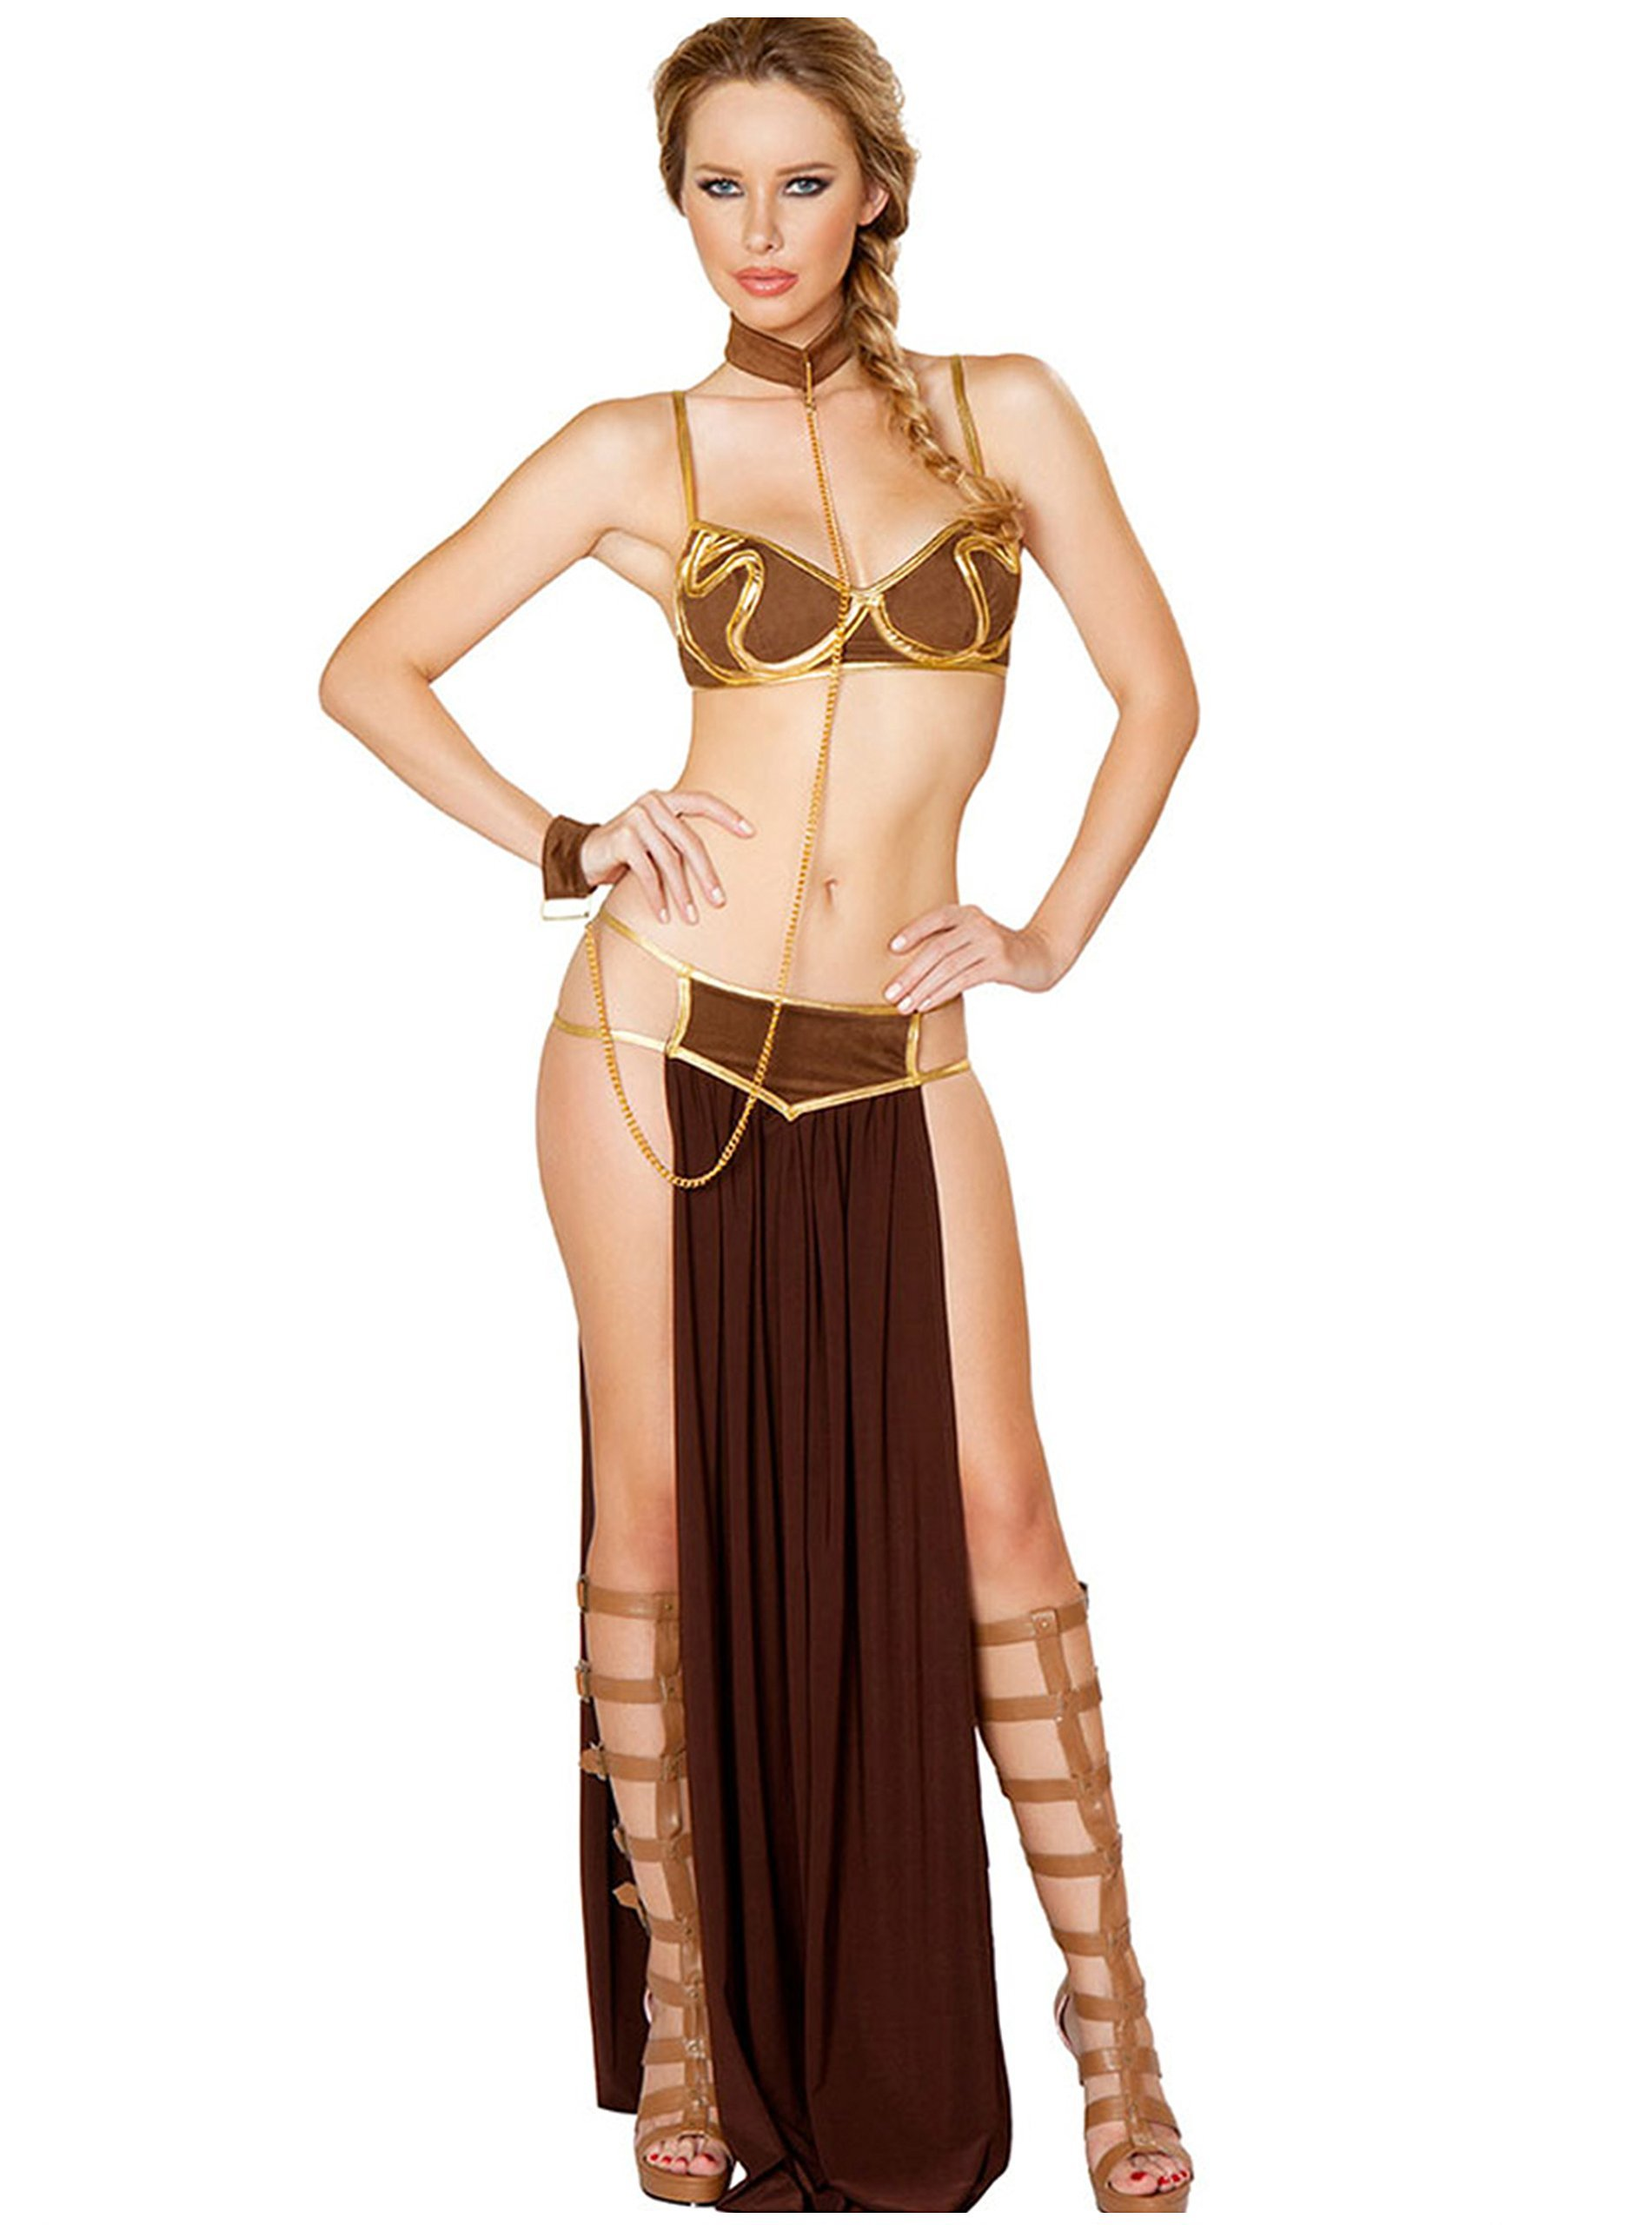 Sexy dress ideas: Princess Leia Sexy Dress Costume